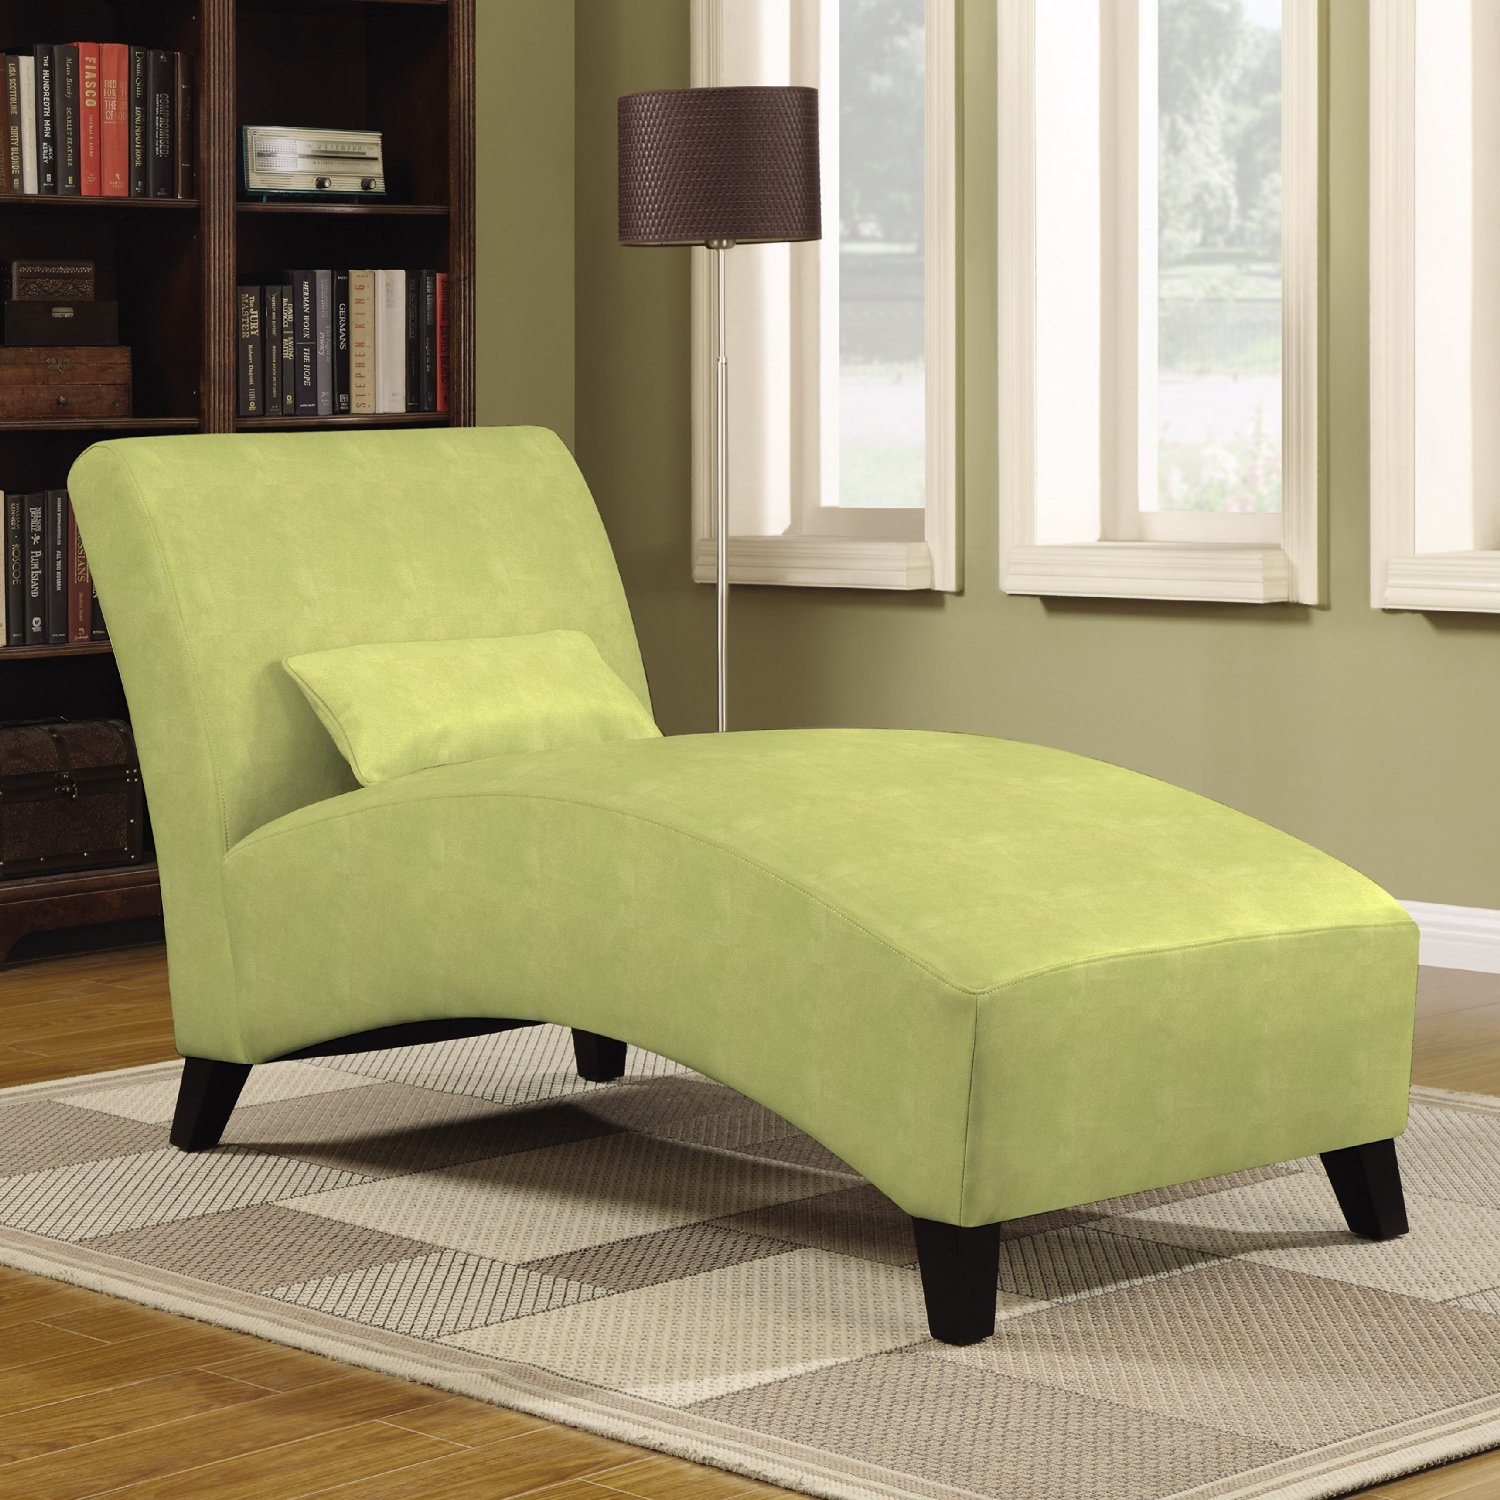 looking upholstered chaise lounges for bedrooms